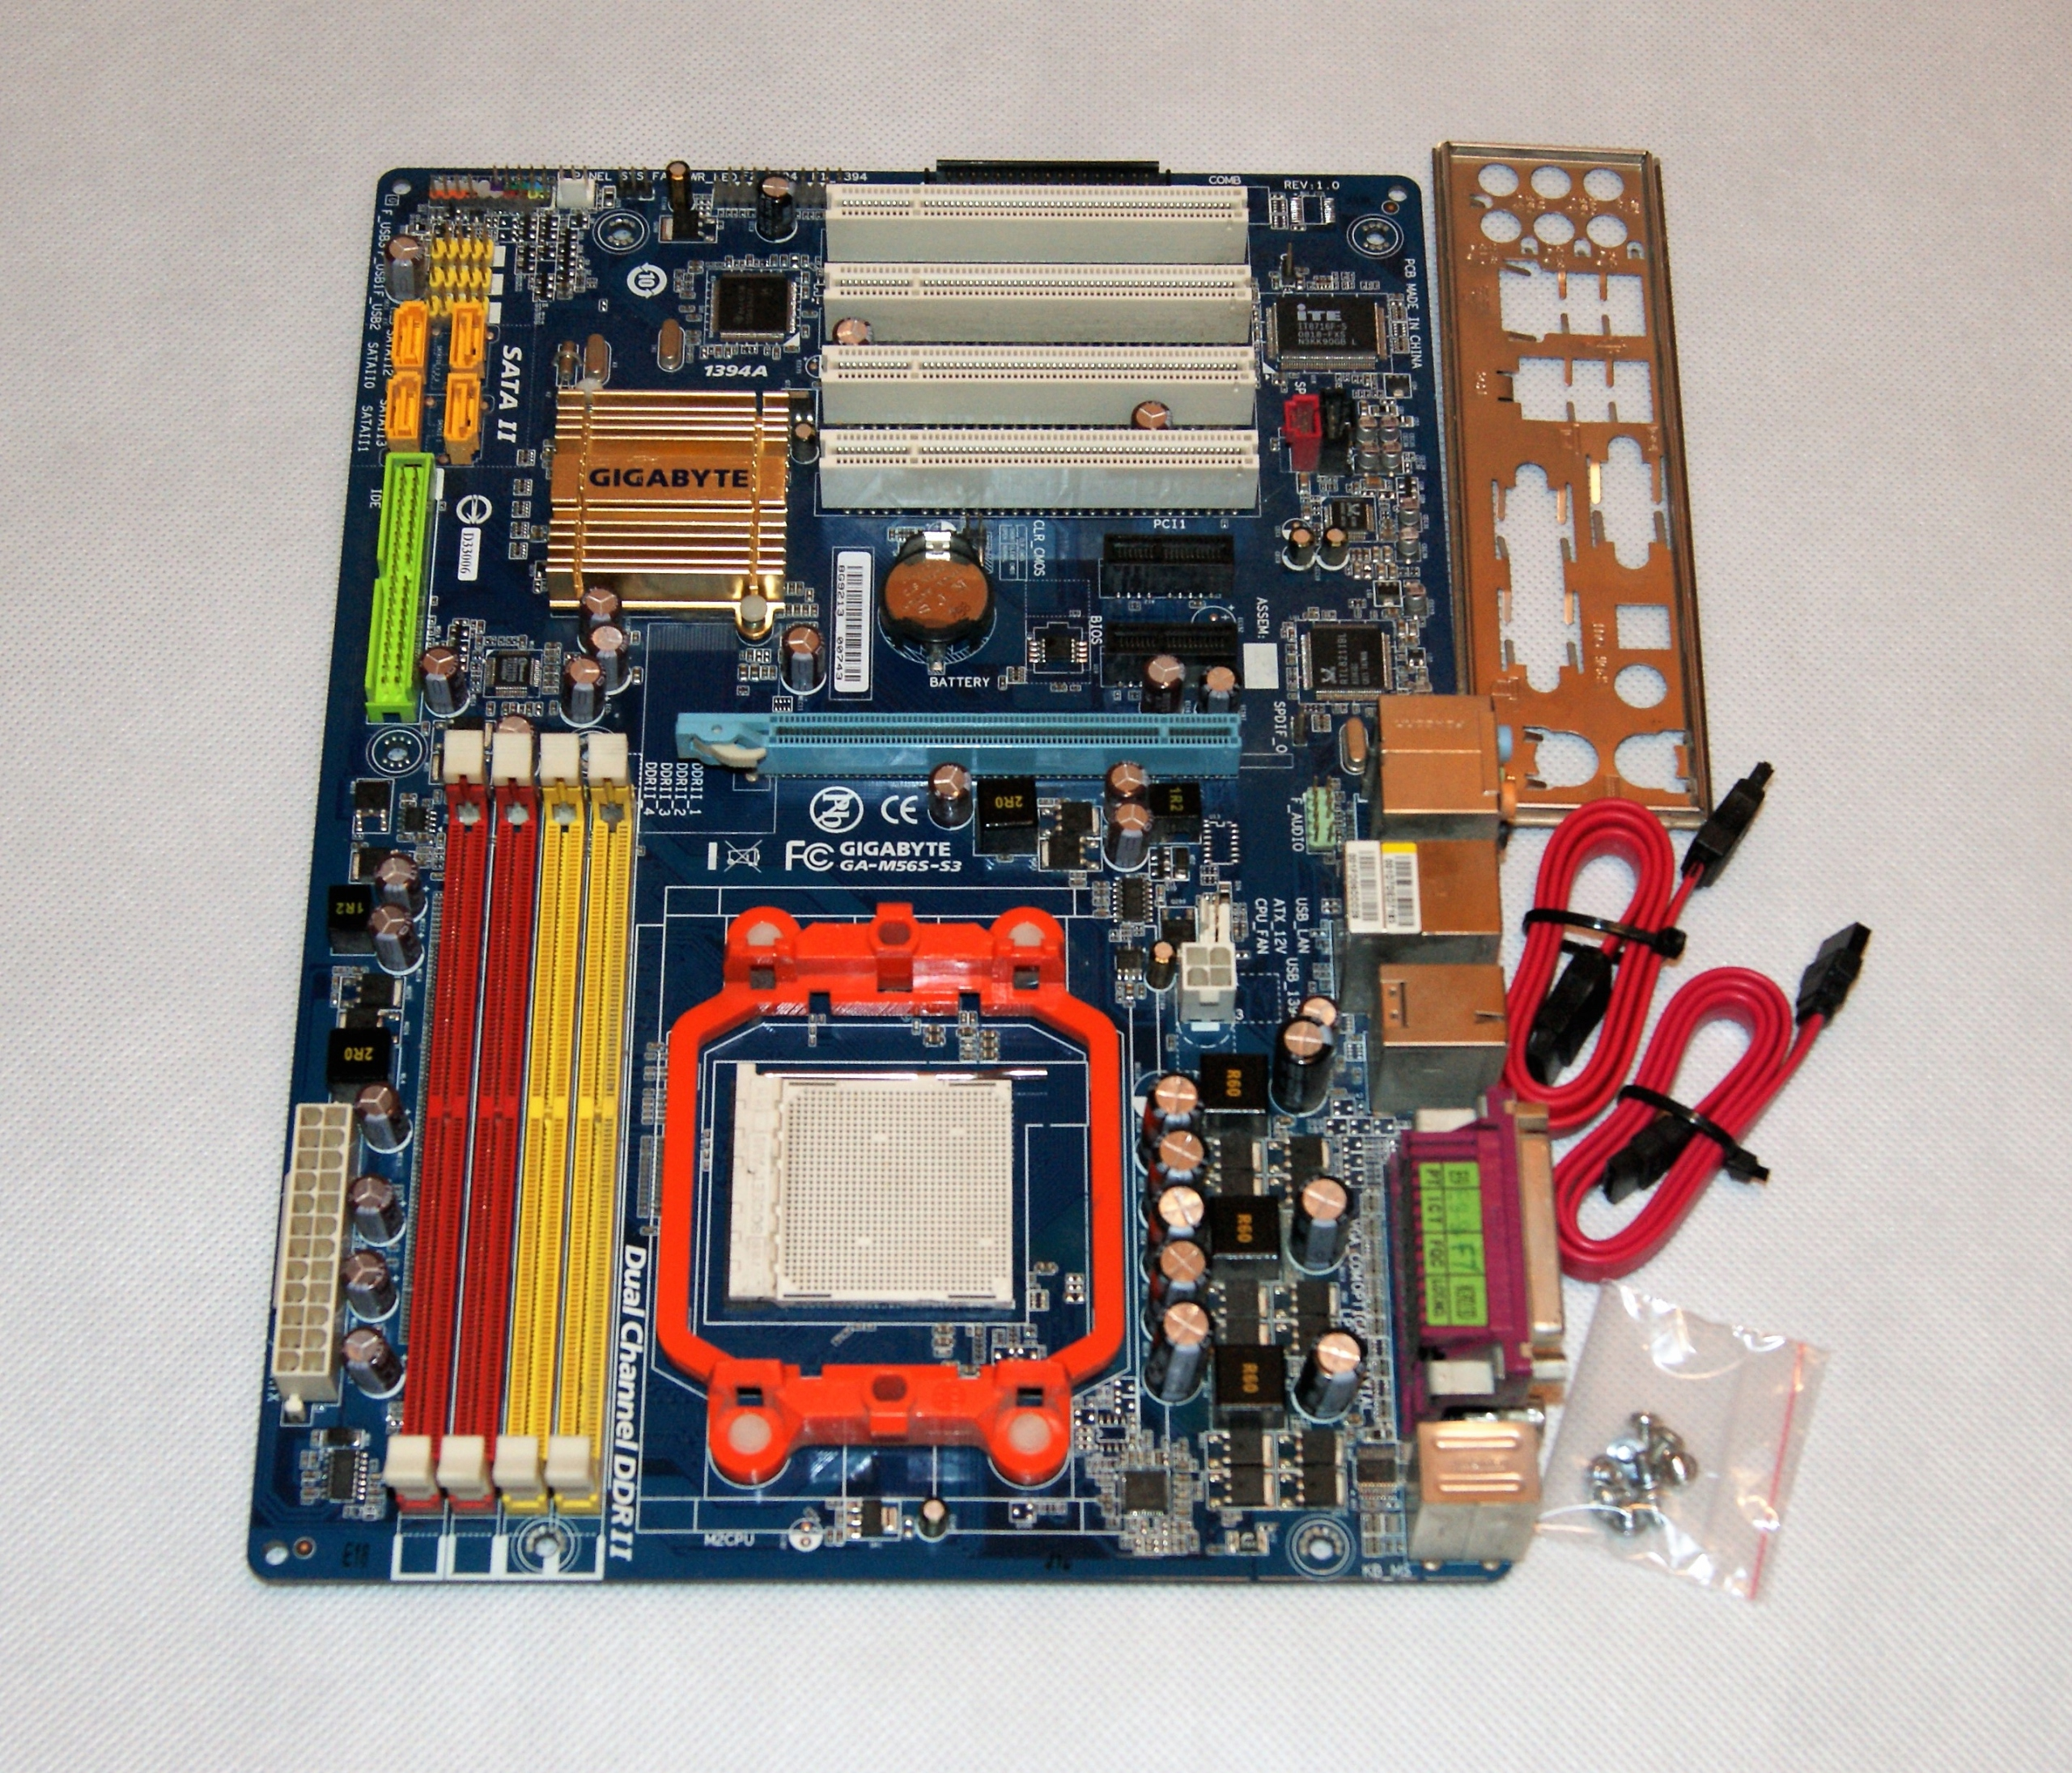 GIGABYTE GA-M56S-S3 CHIPSET DRIVERS FOR WINDOWS VISTA